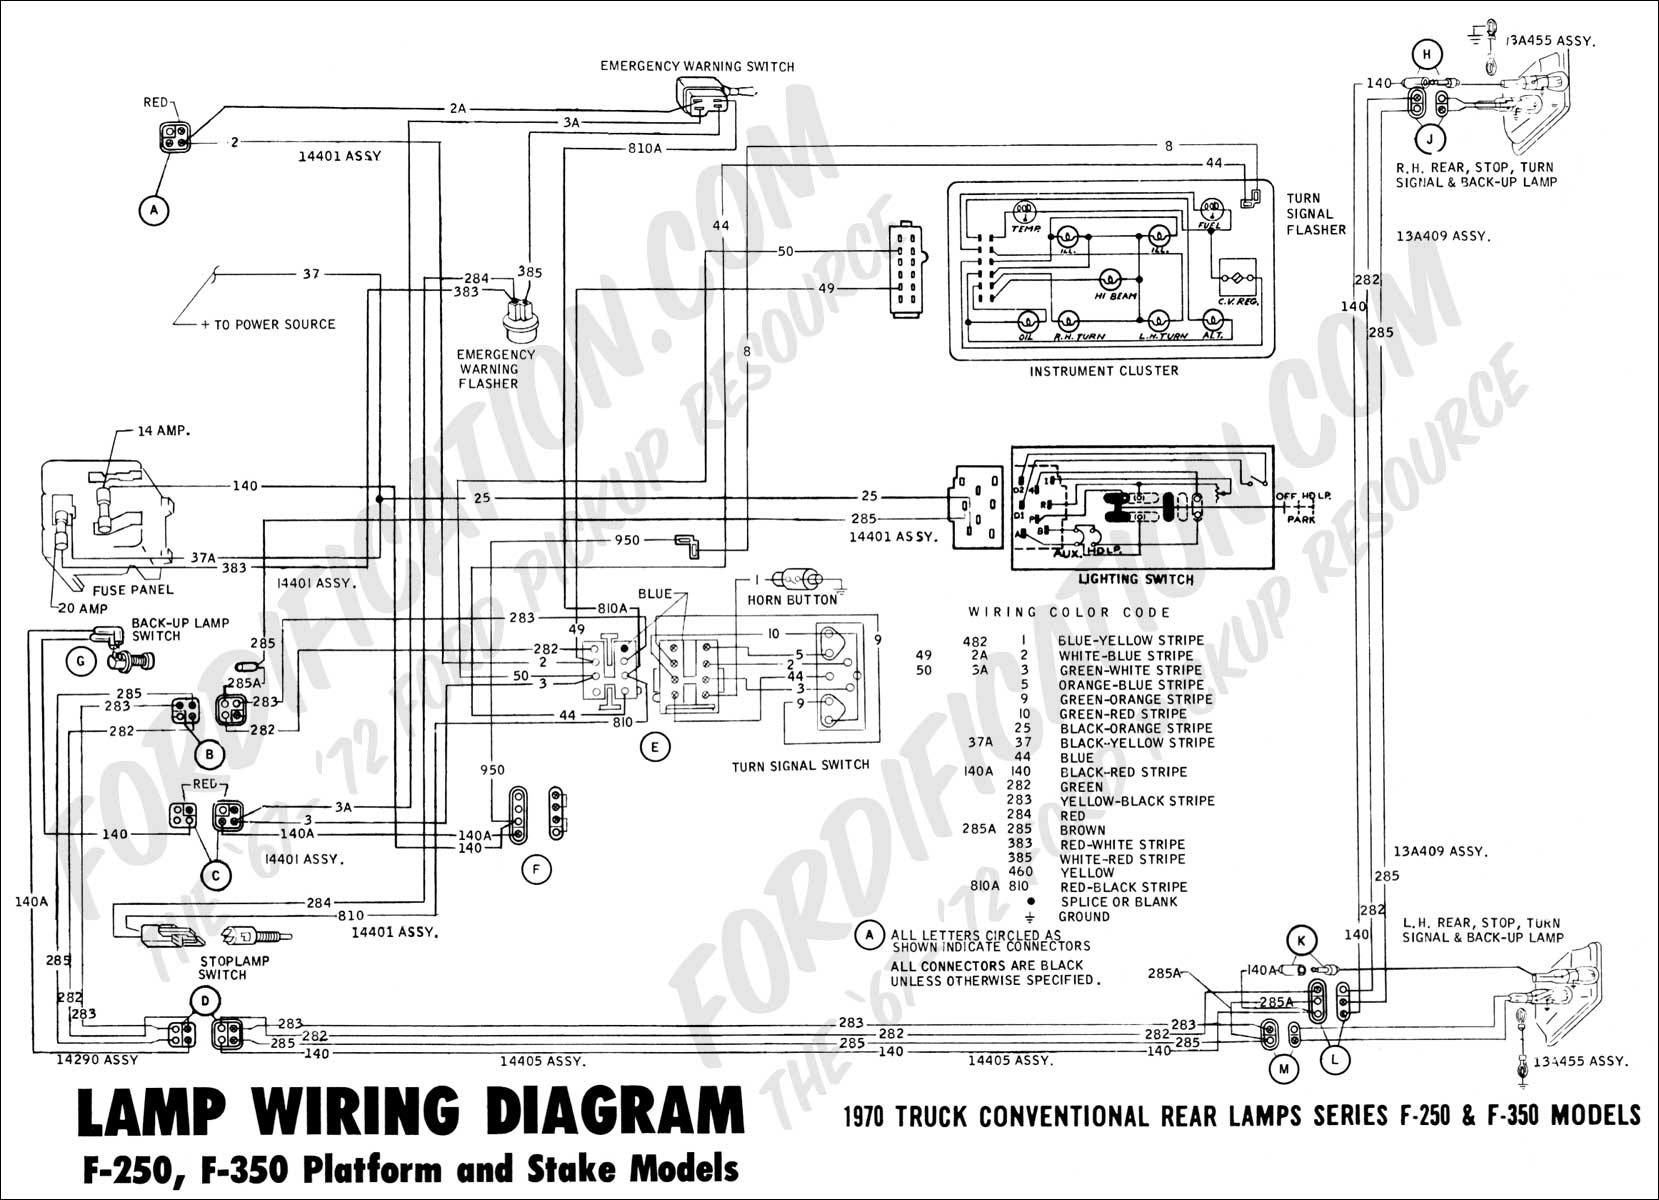 2000 F250 Tail Light Wiring Diagram Wrg 4232] F 150 1999 Parking Light Wiring Diagram Of 2000 F250 Tail Light Wiring Diagram